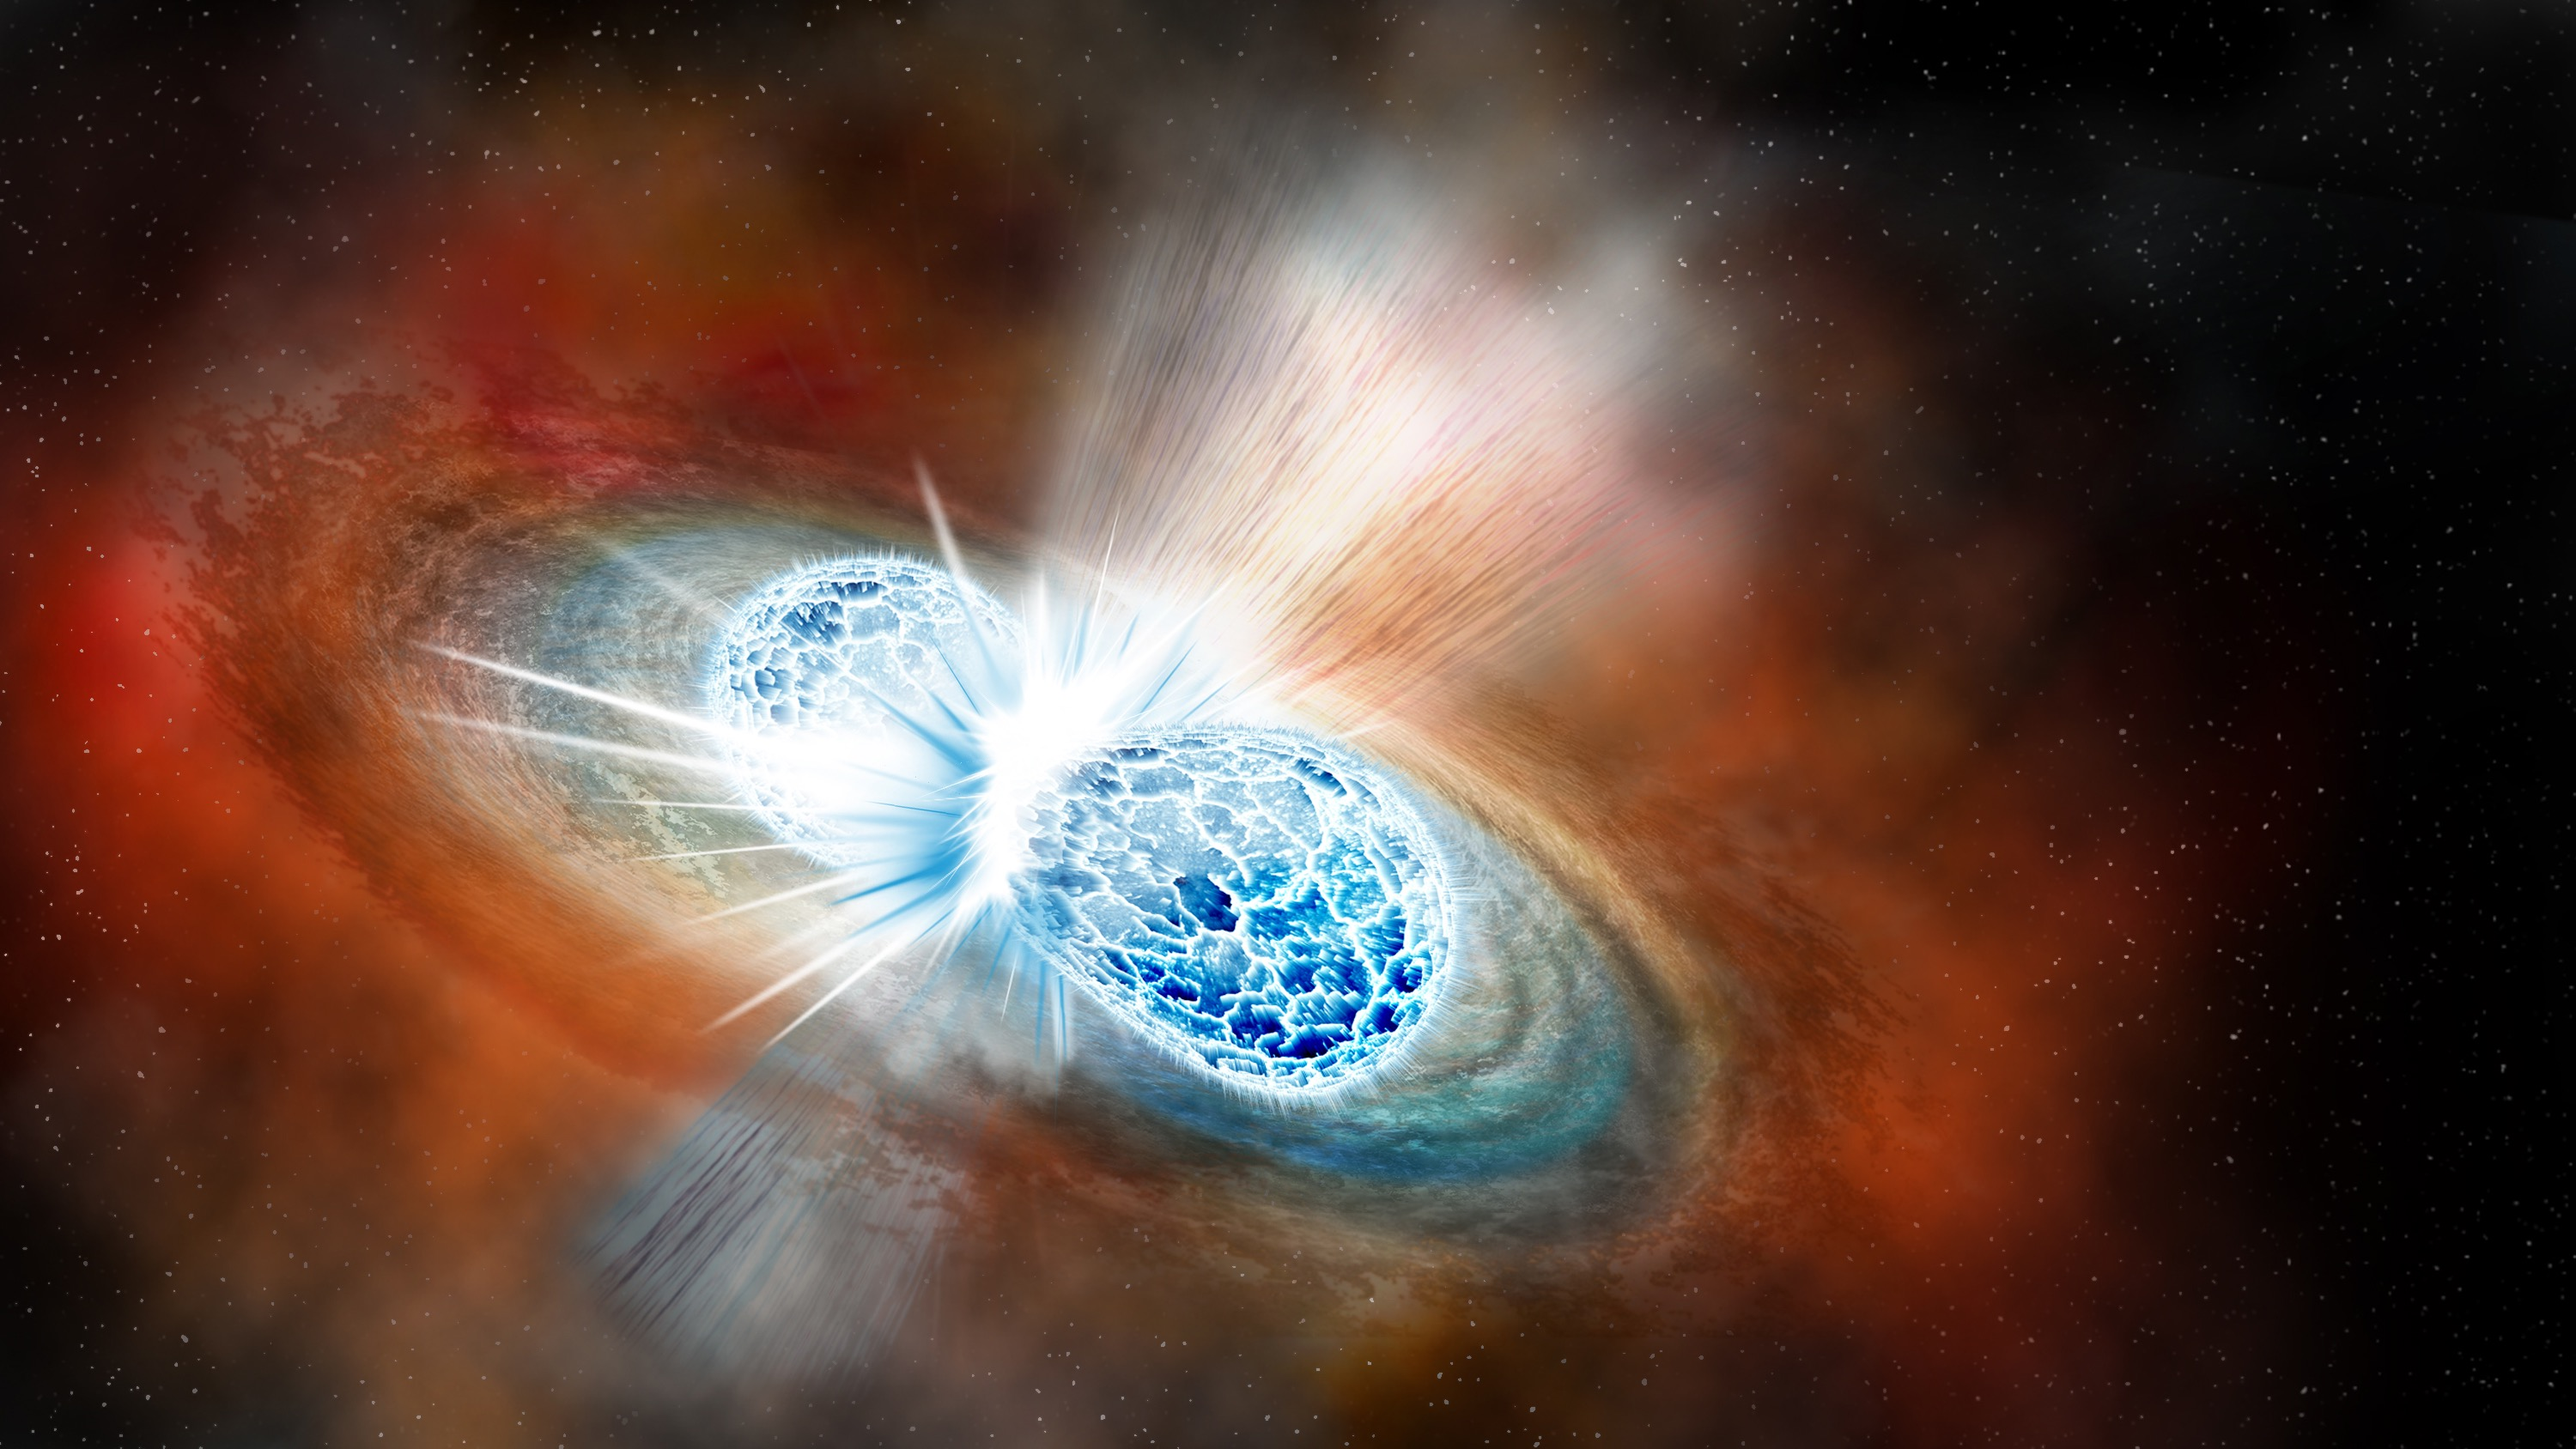 An artist's concept of what a neutron star collision would look like. Credit: Illustration by Robin Dienel courtesy of the Carnegie Institution for Science